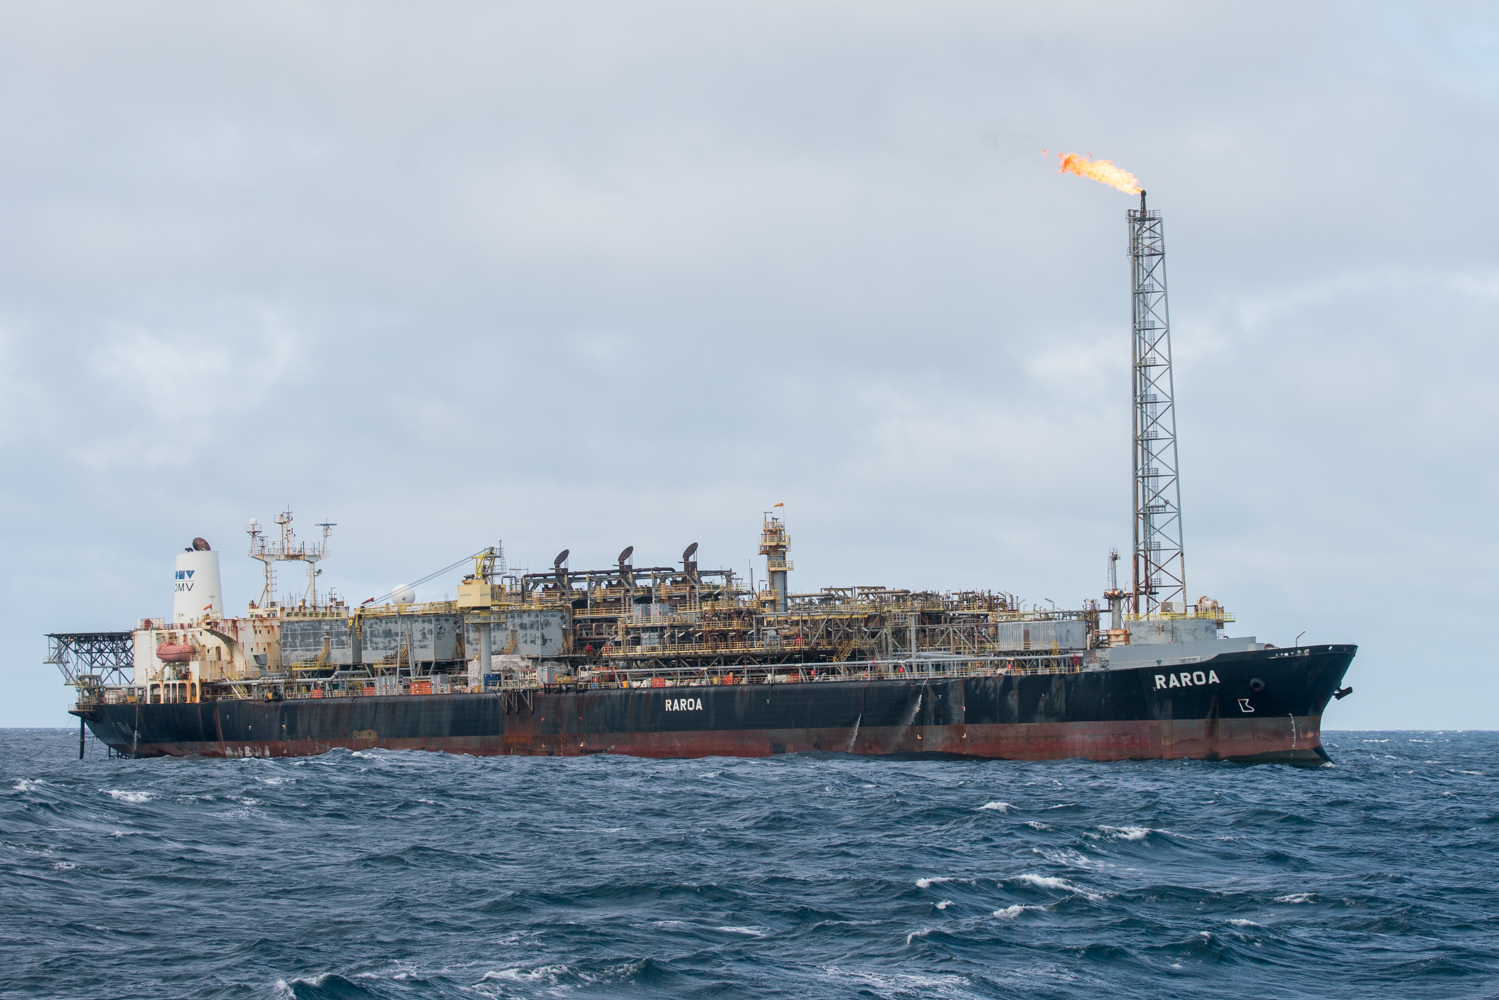 The Raroa, an OMV-owned oil storage and processing vessel.